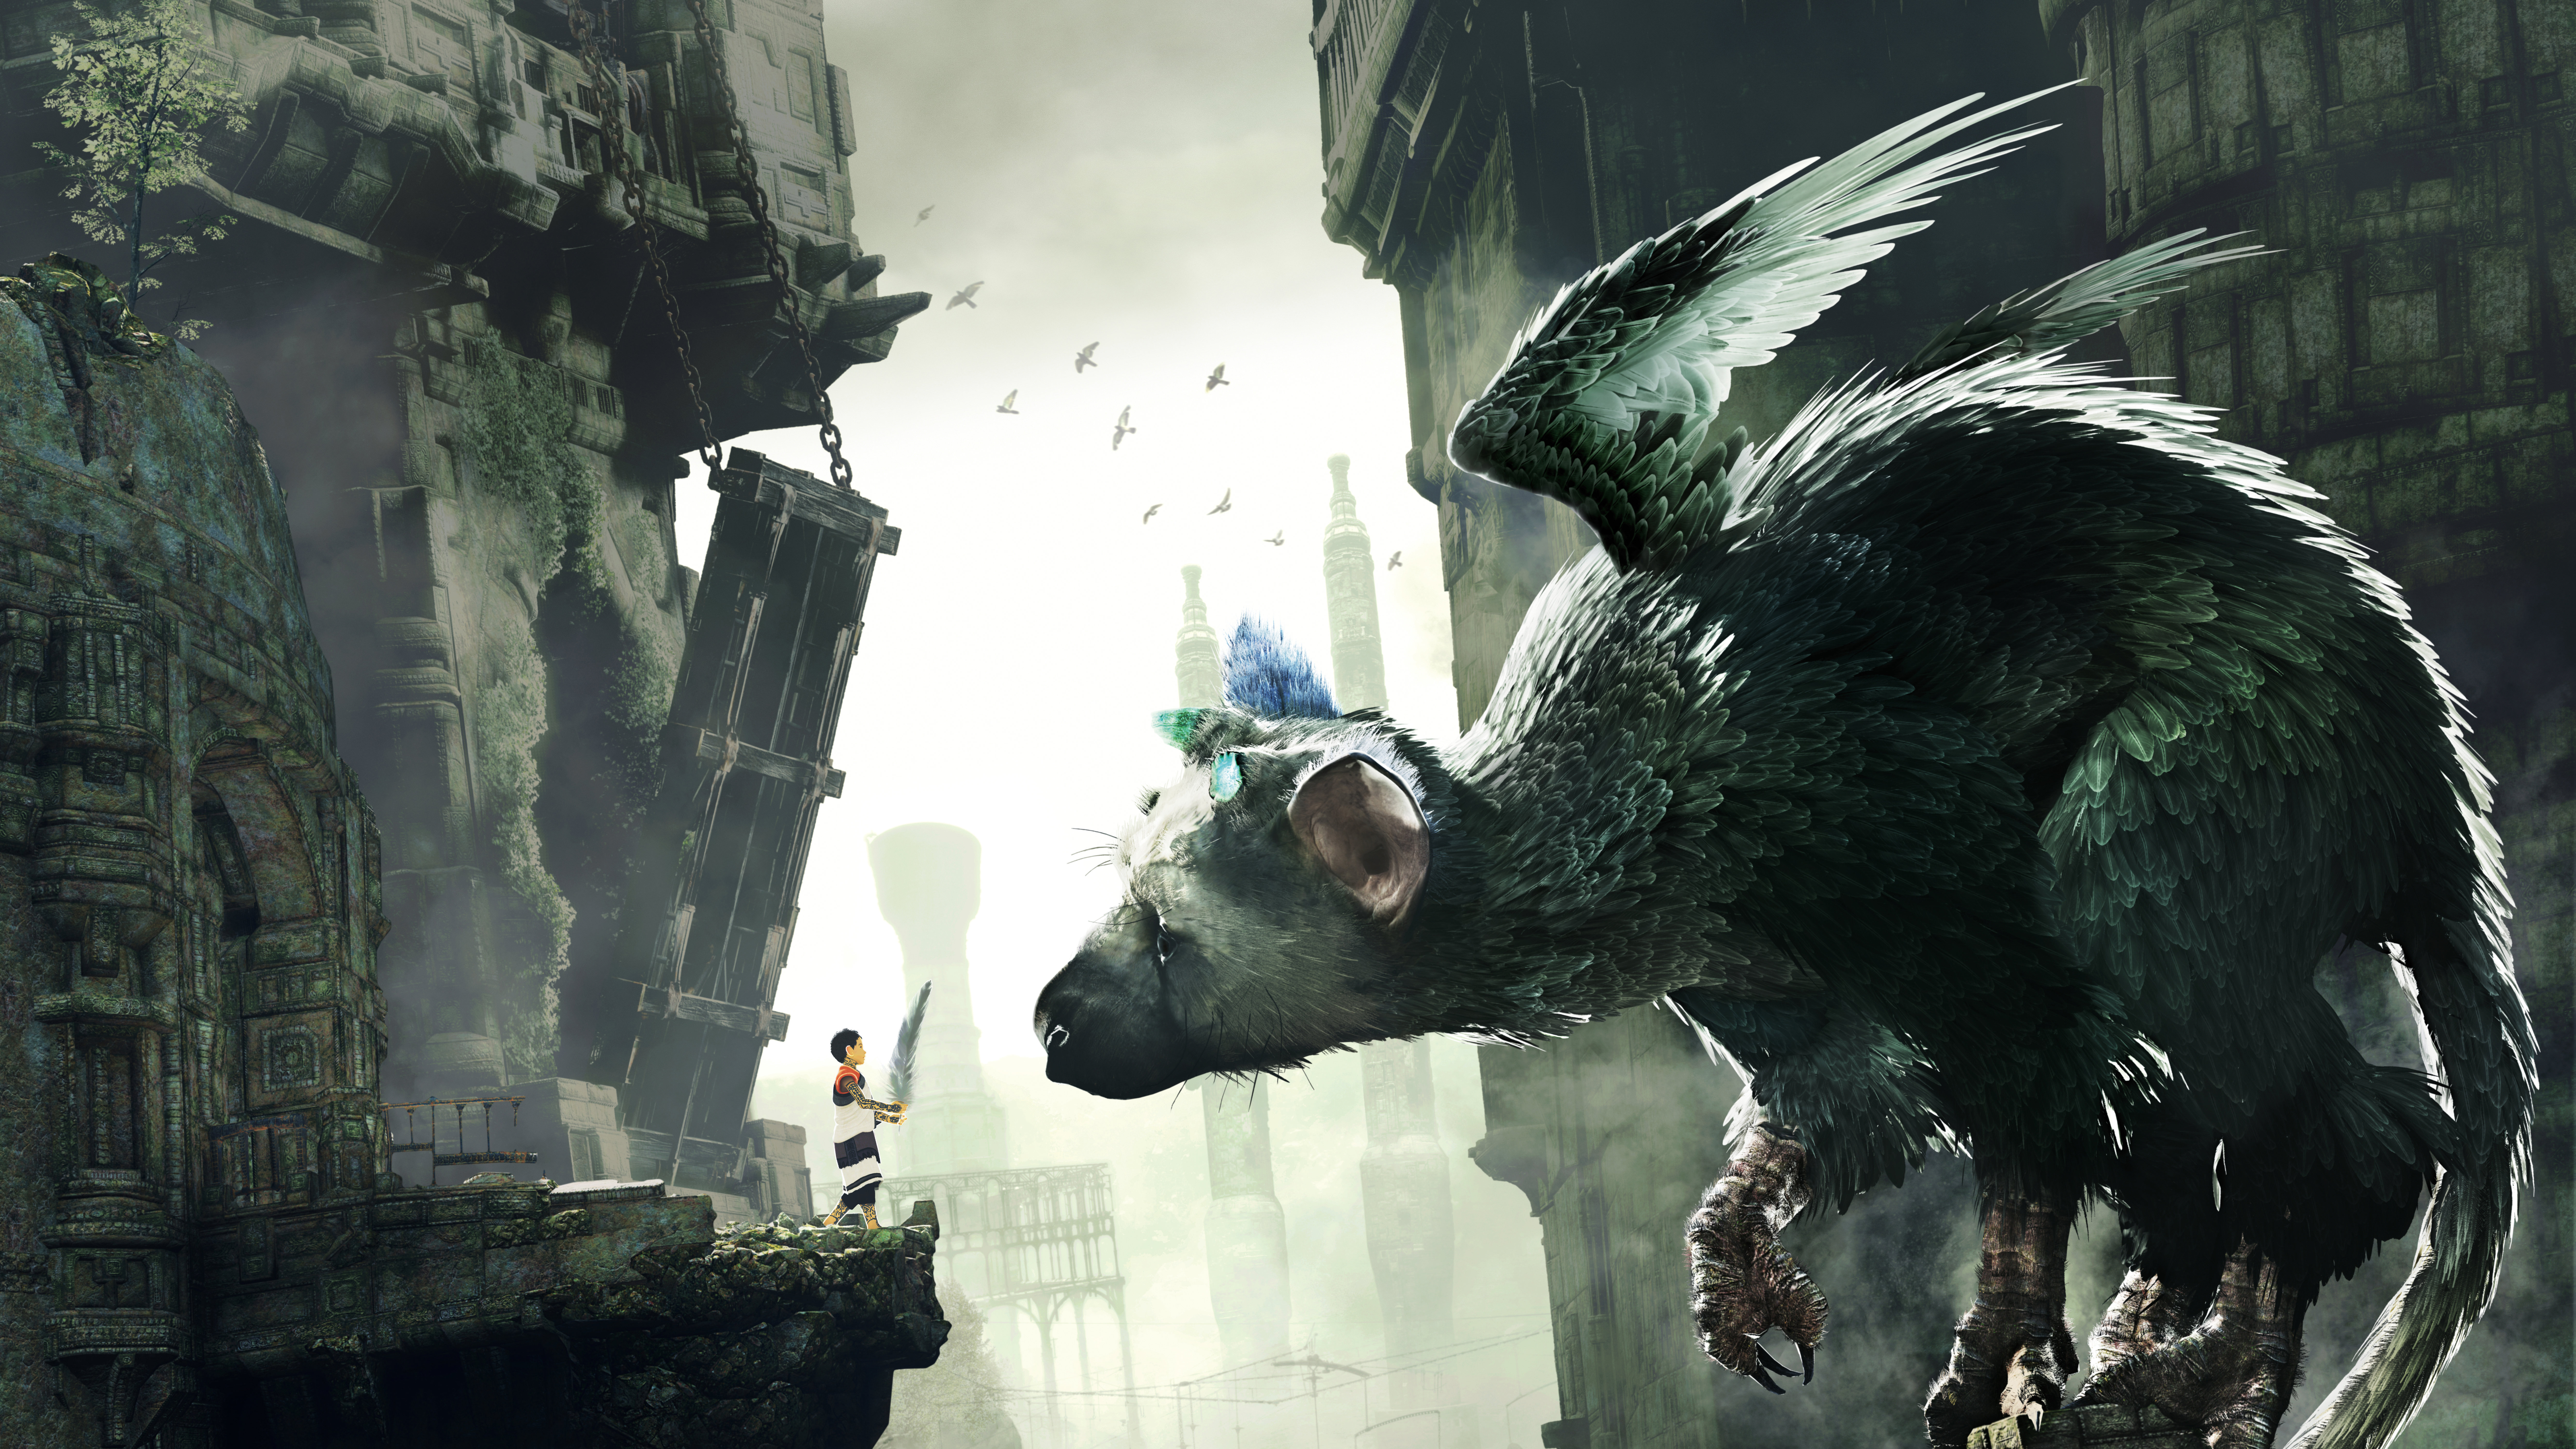 the last guardian 1589581241 - The Last Guardian - The Last Guardian game wallpapers 4k